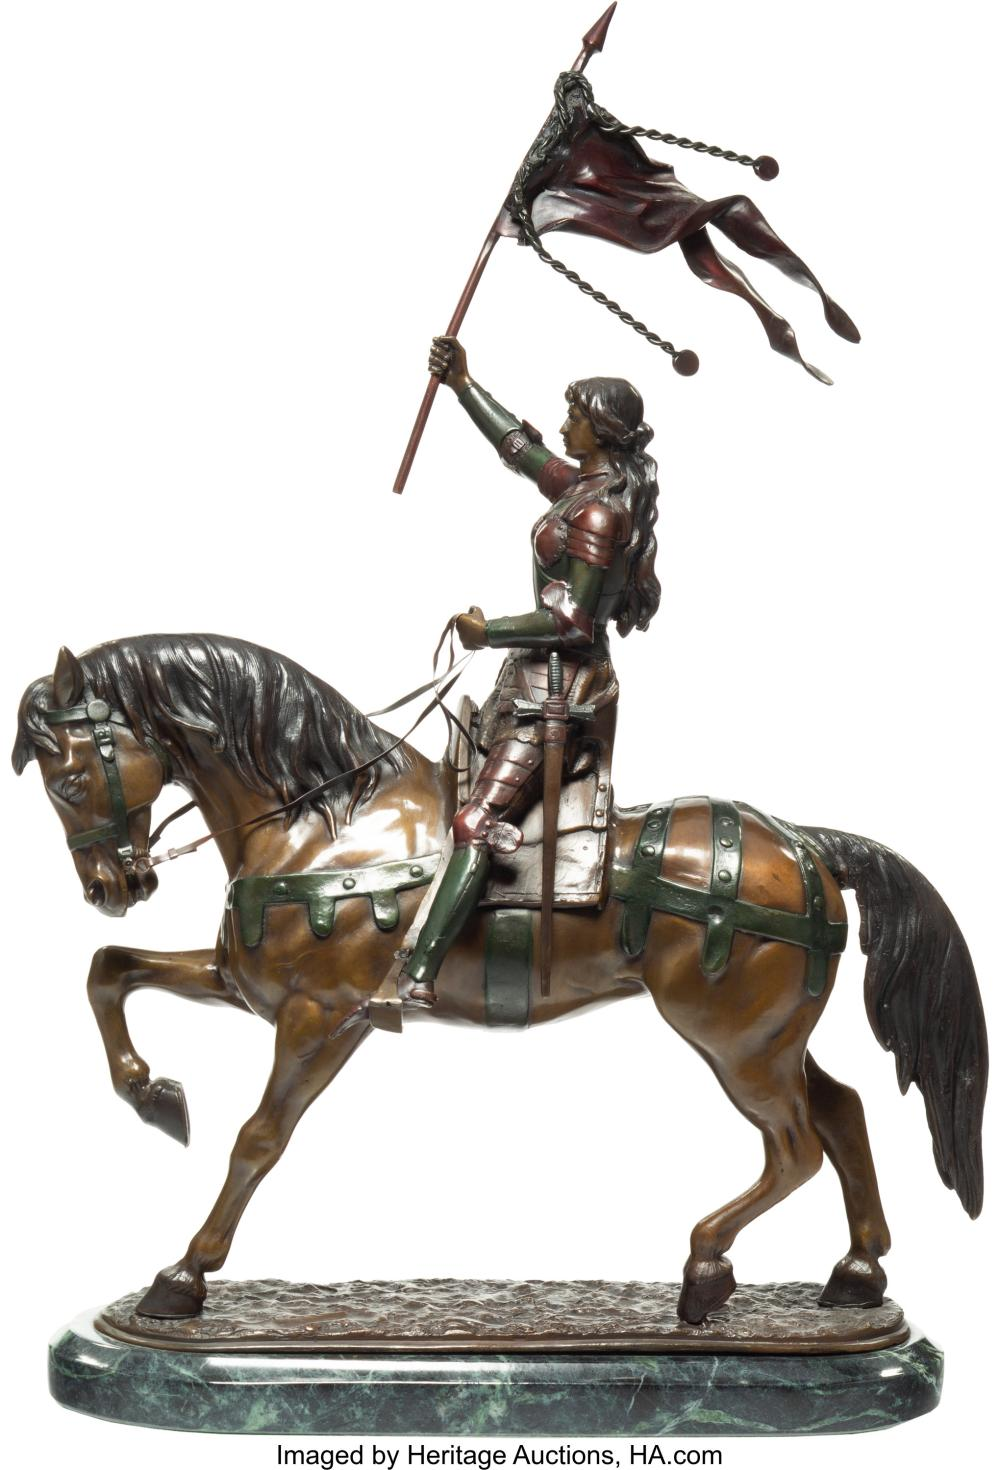 Lot 21168: A Polychromed Sculpture of Joan of Arc Modeled After Friemet 25-1/2 x 16 x 5 inc